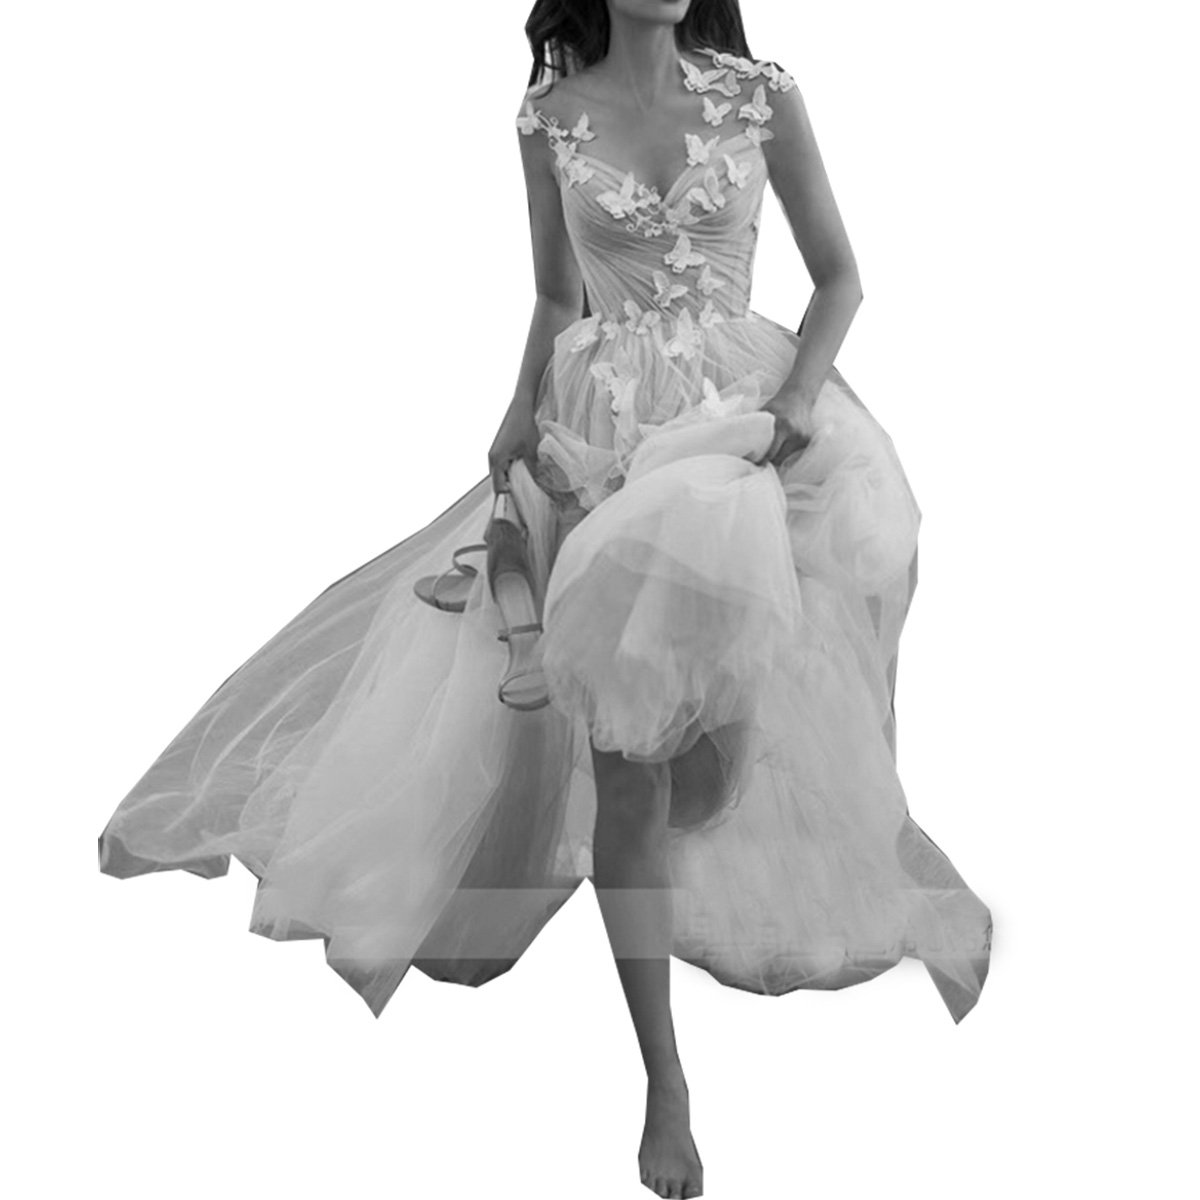 c2dd98033c83 Molixin Tuller Simply Beach Wedding Gowns Boho Halter Prom Dresses at  Amazon Women's Clothing store: